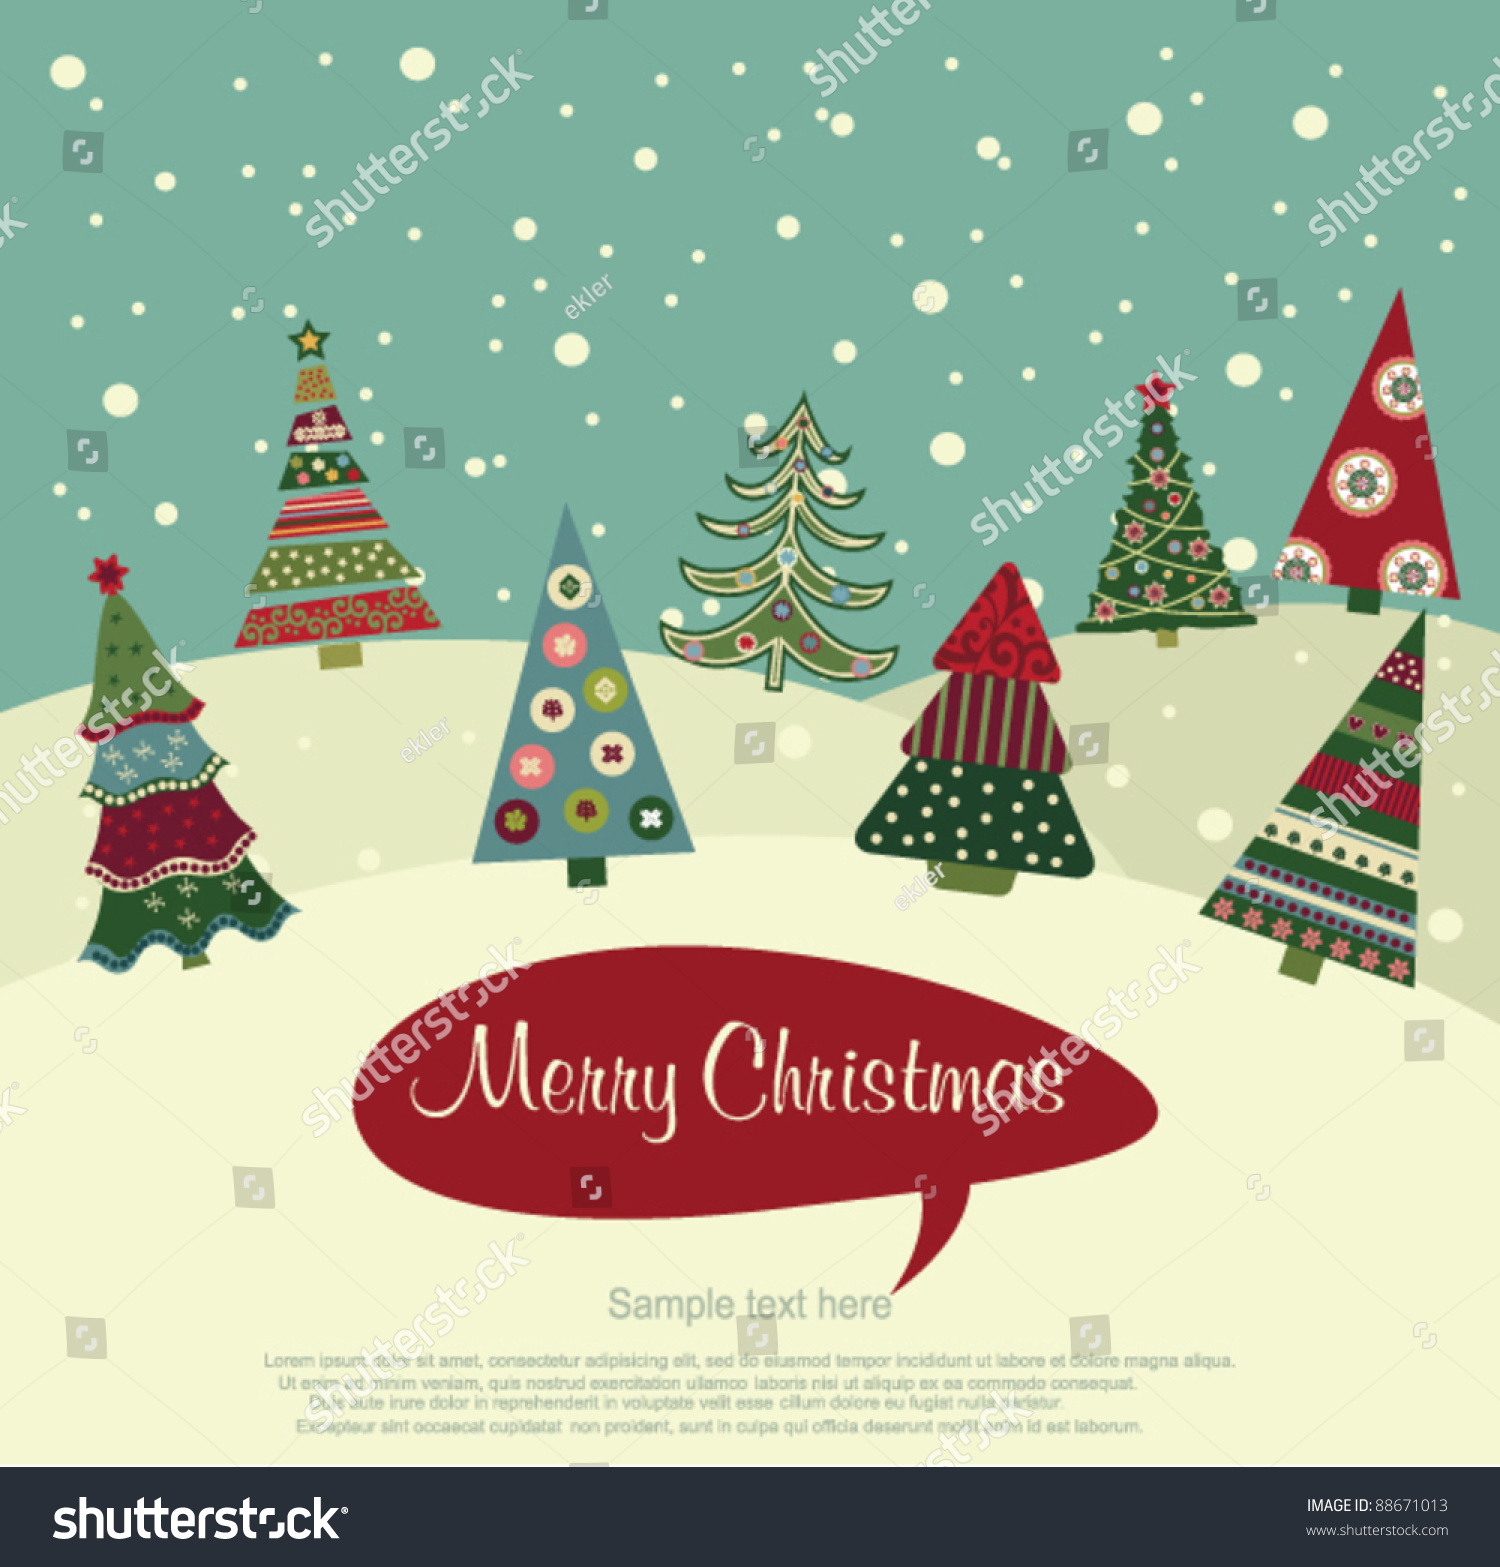 Retro Christmas Card Stock Vector (Royalty Free) 88671013 - Shutterstock